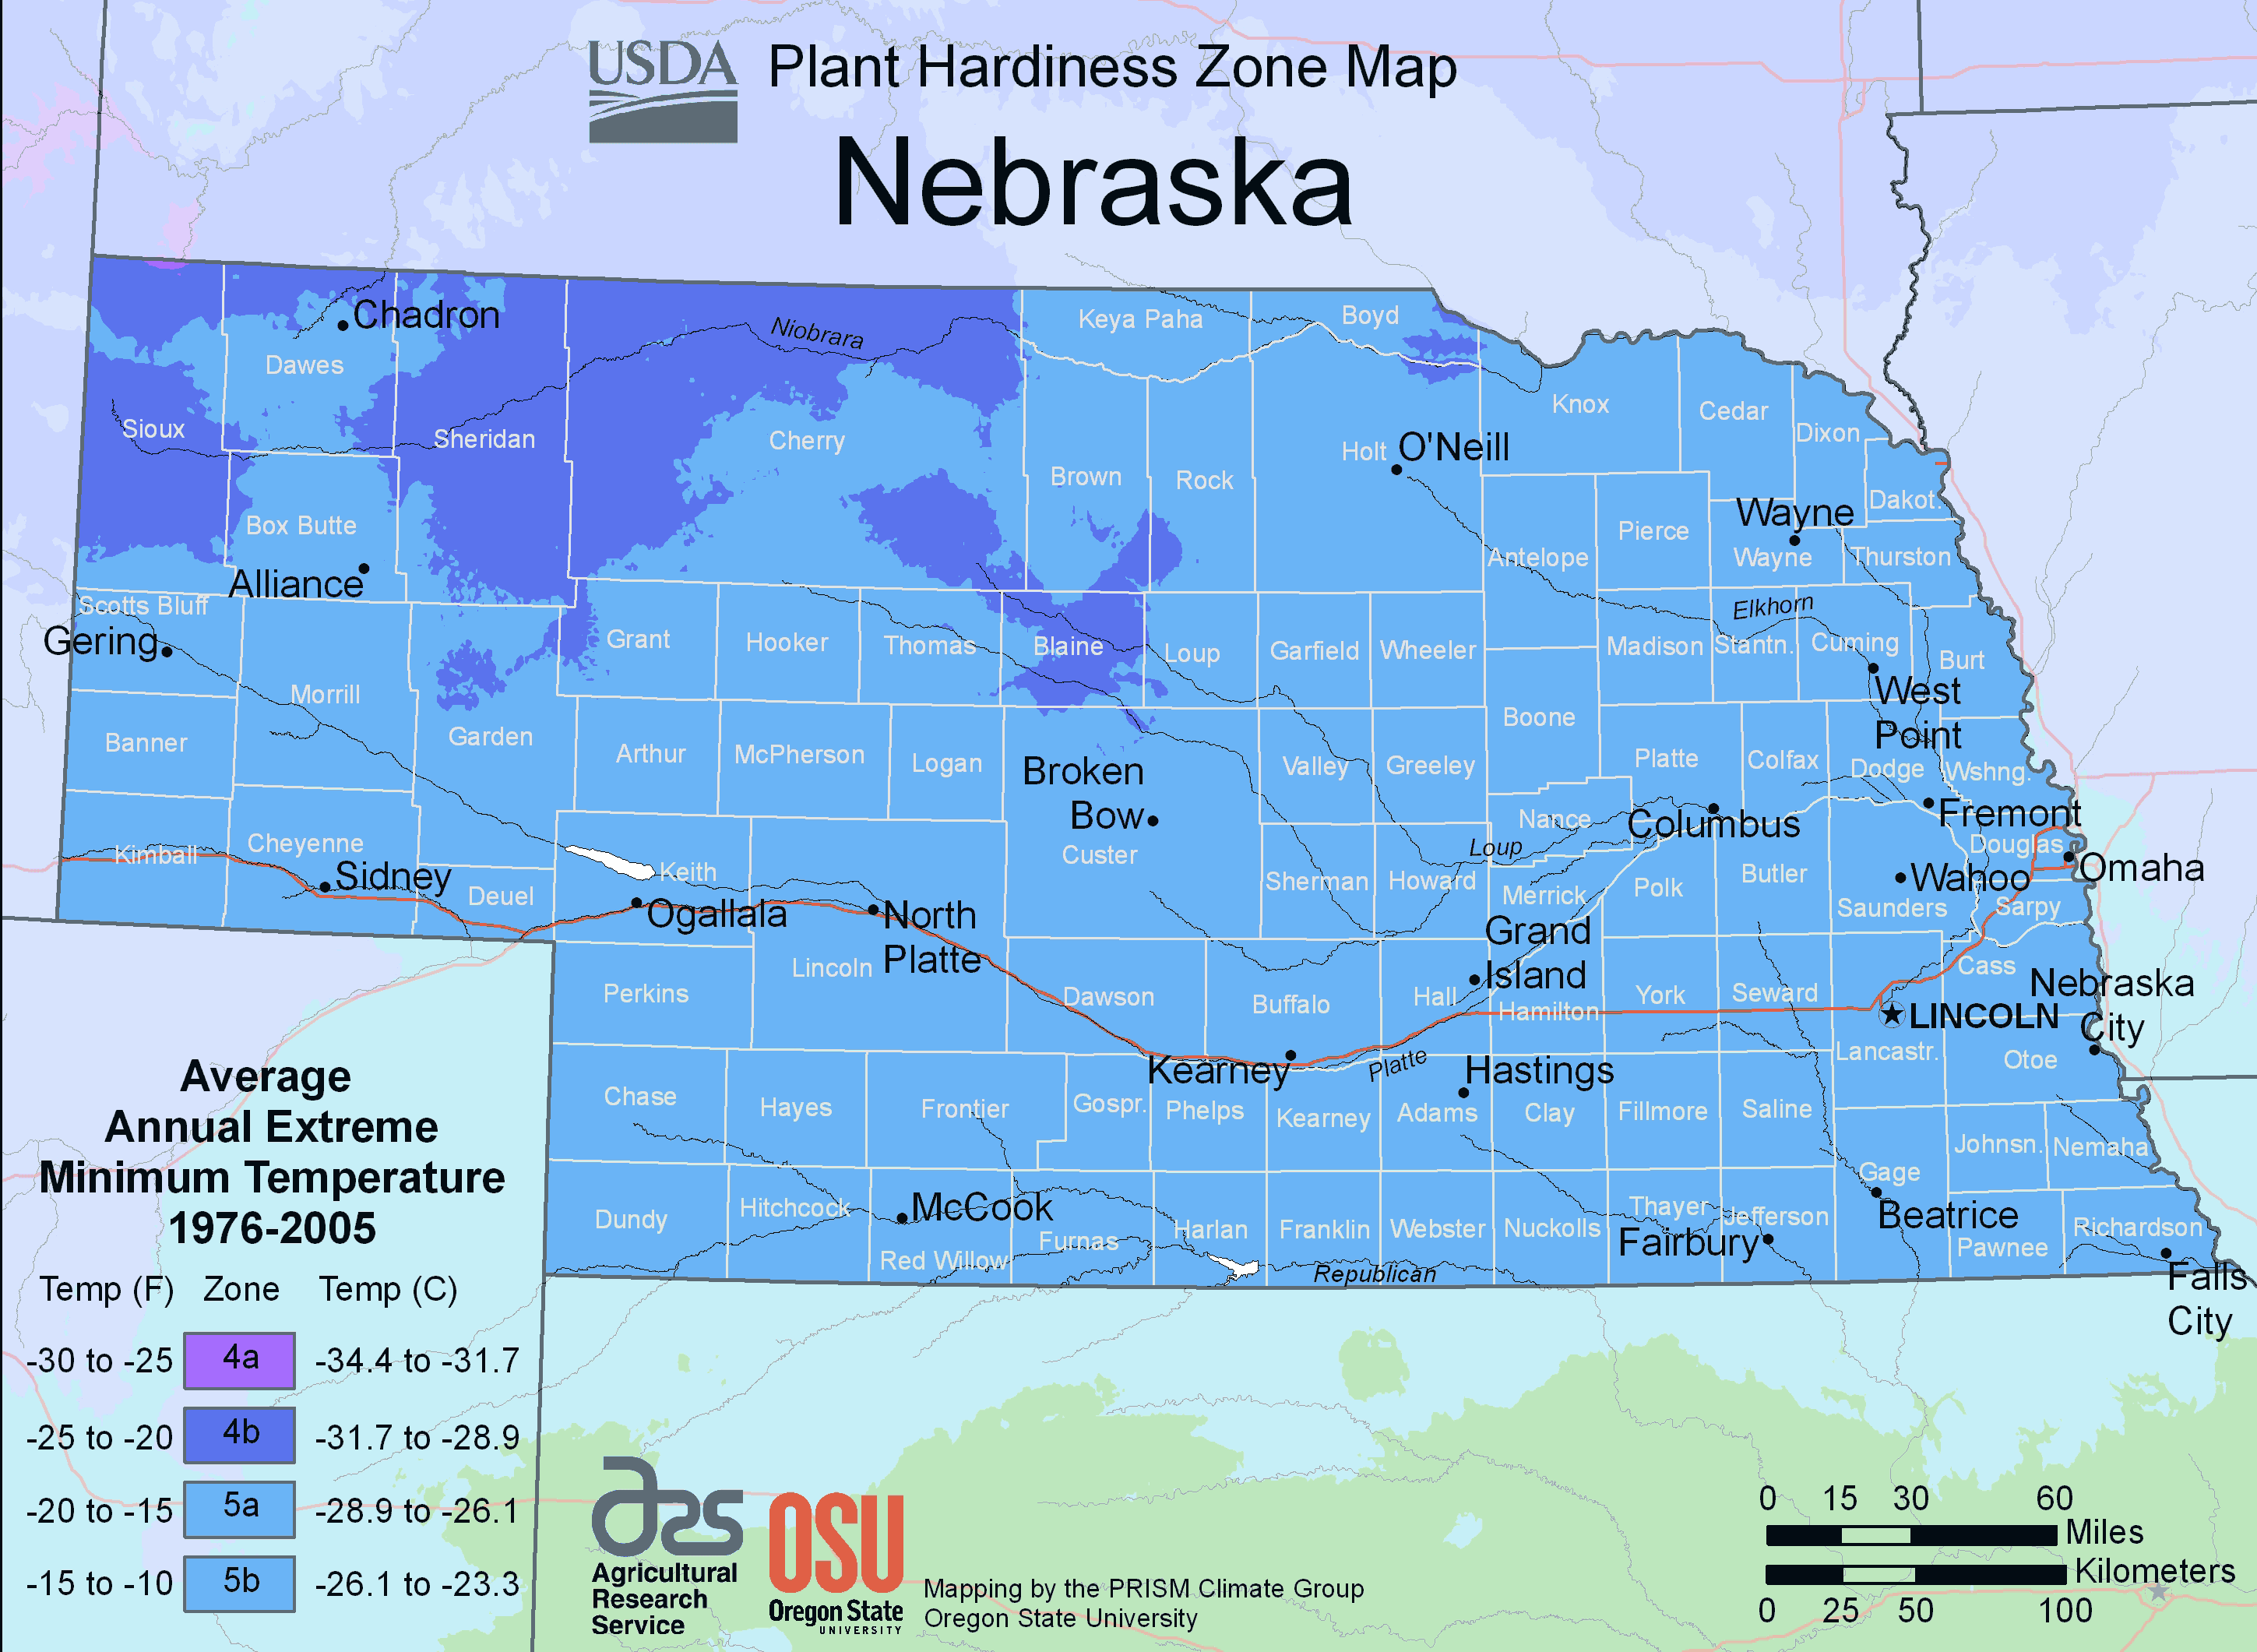 Nebraska Plant Hardiness Zone Map